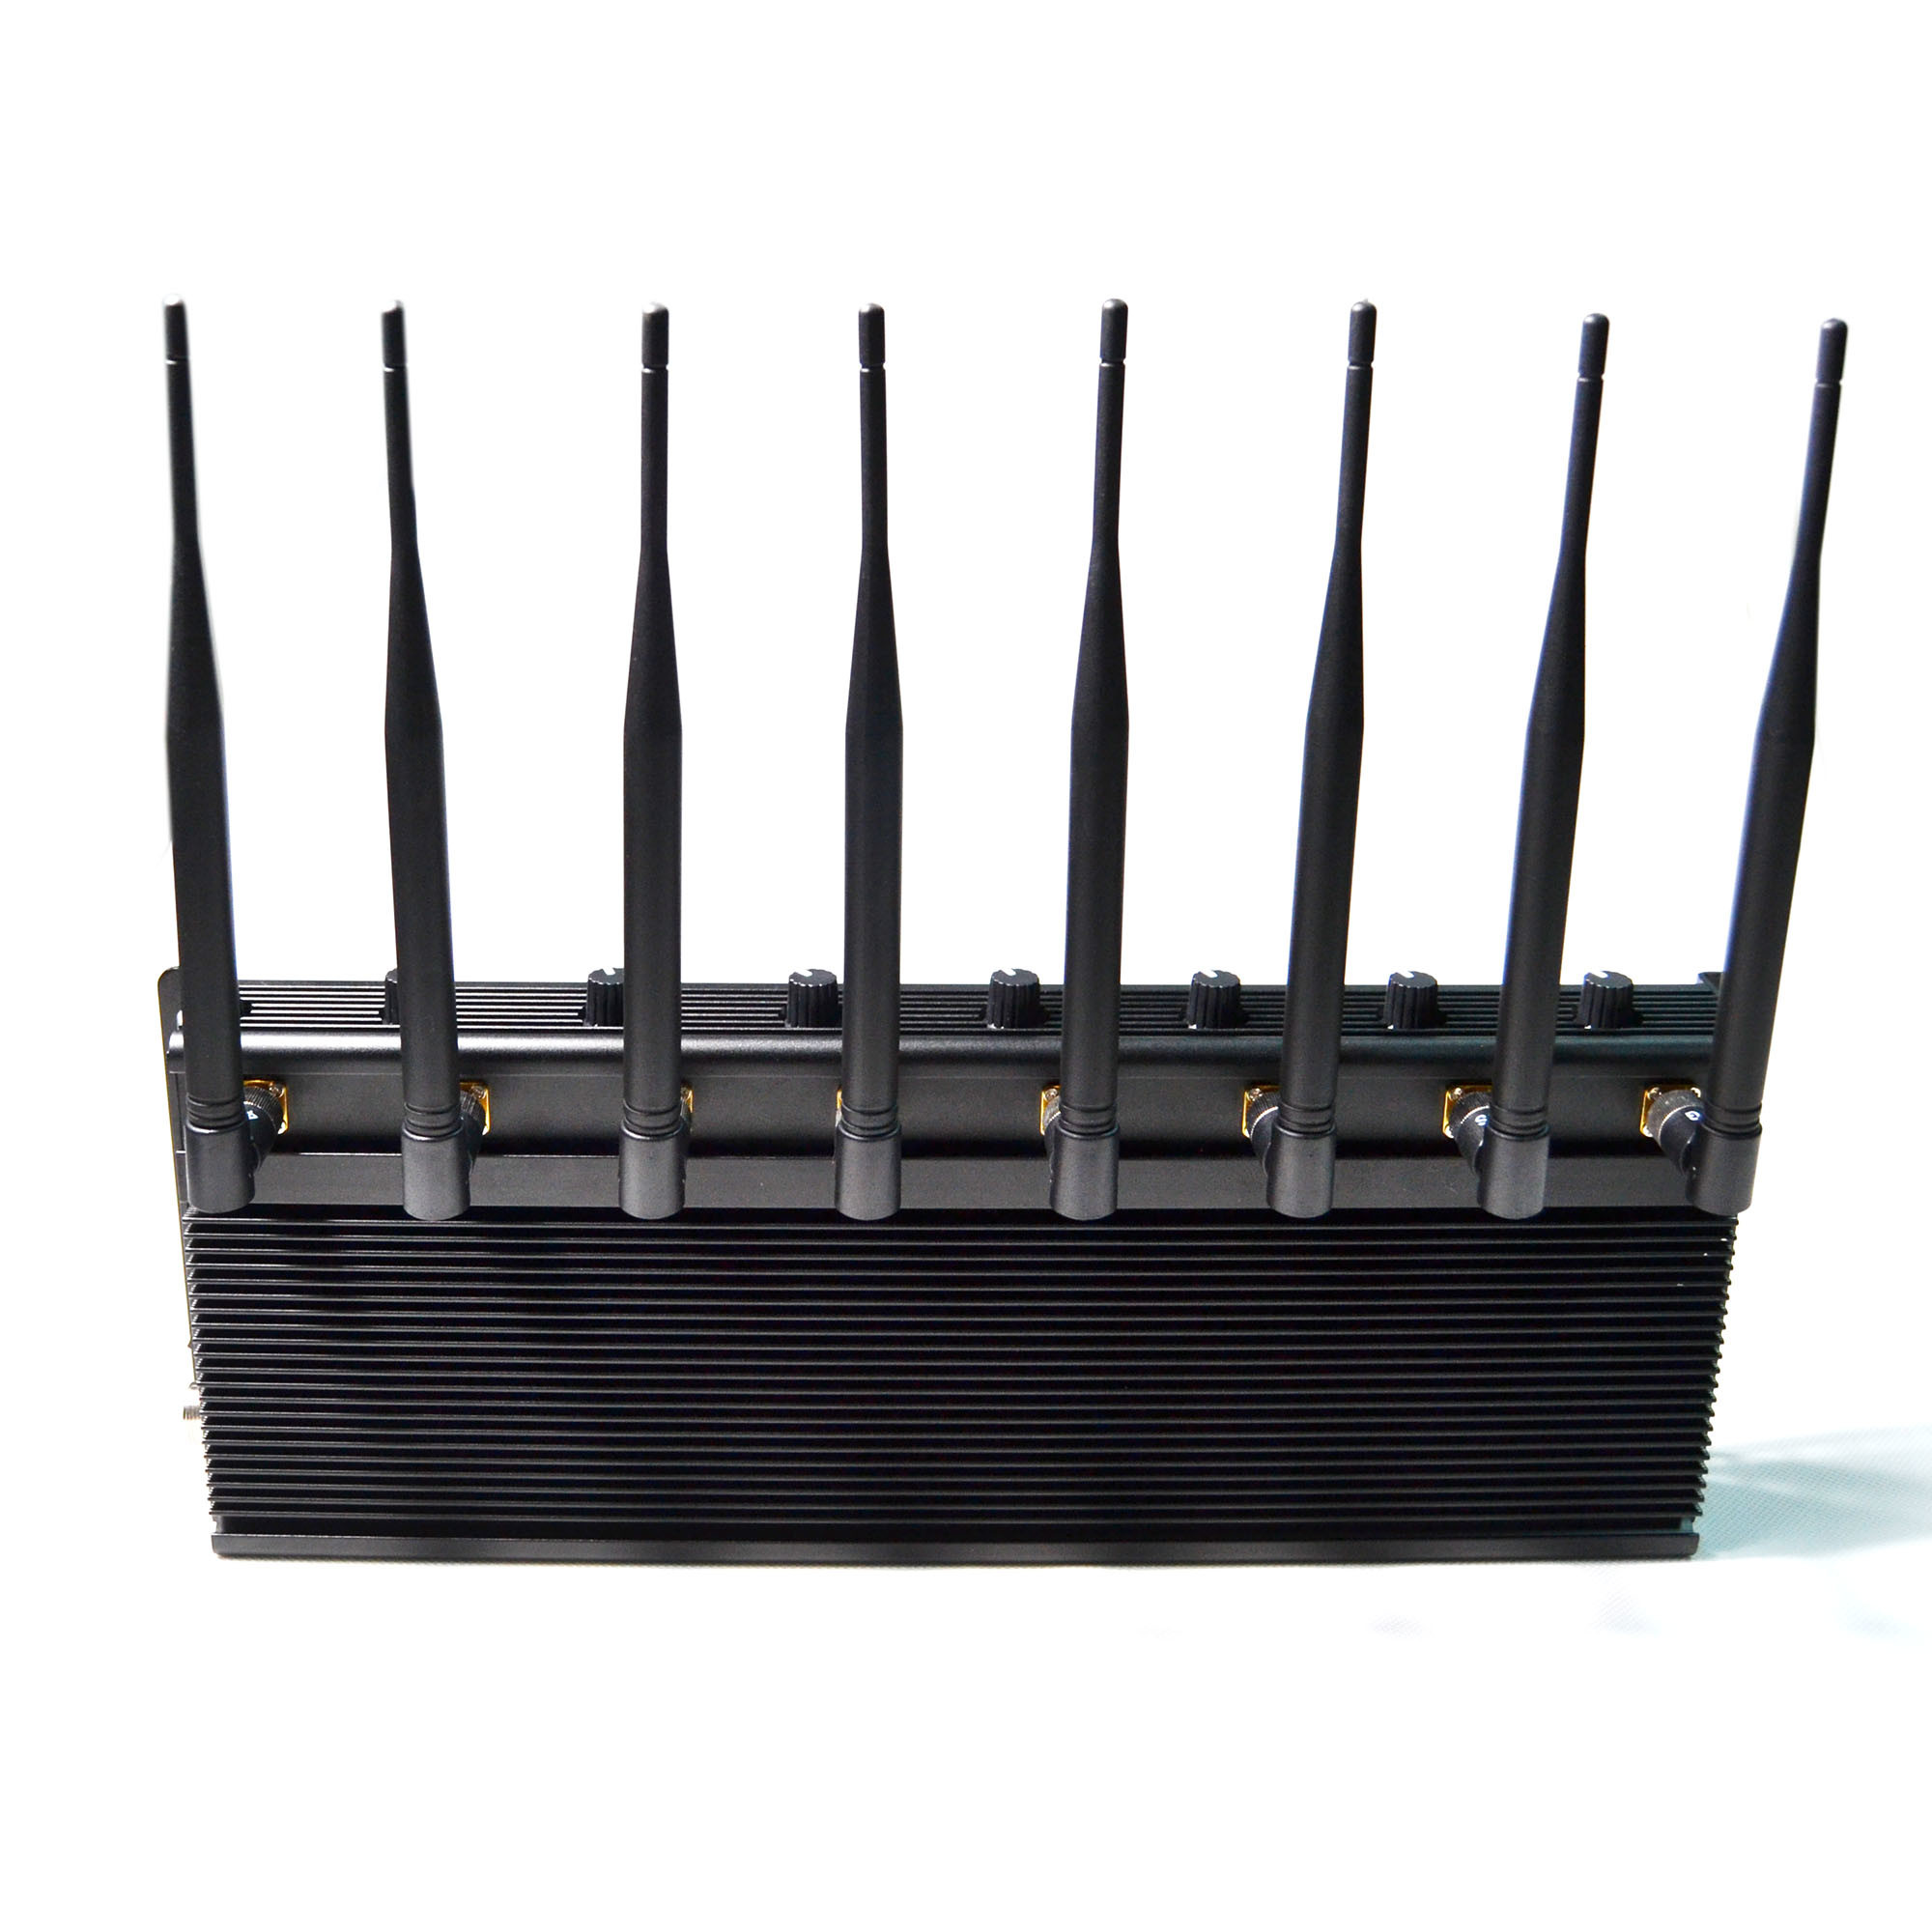 Factory New Model Eight Antennas Signal Blockers Updated Version with 2g 3G 4G GPS Lojac Remote Control Frequencies